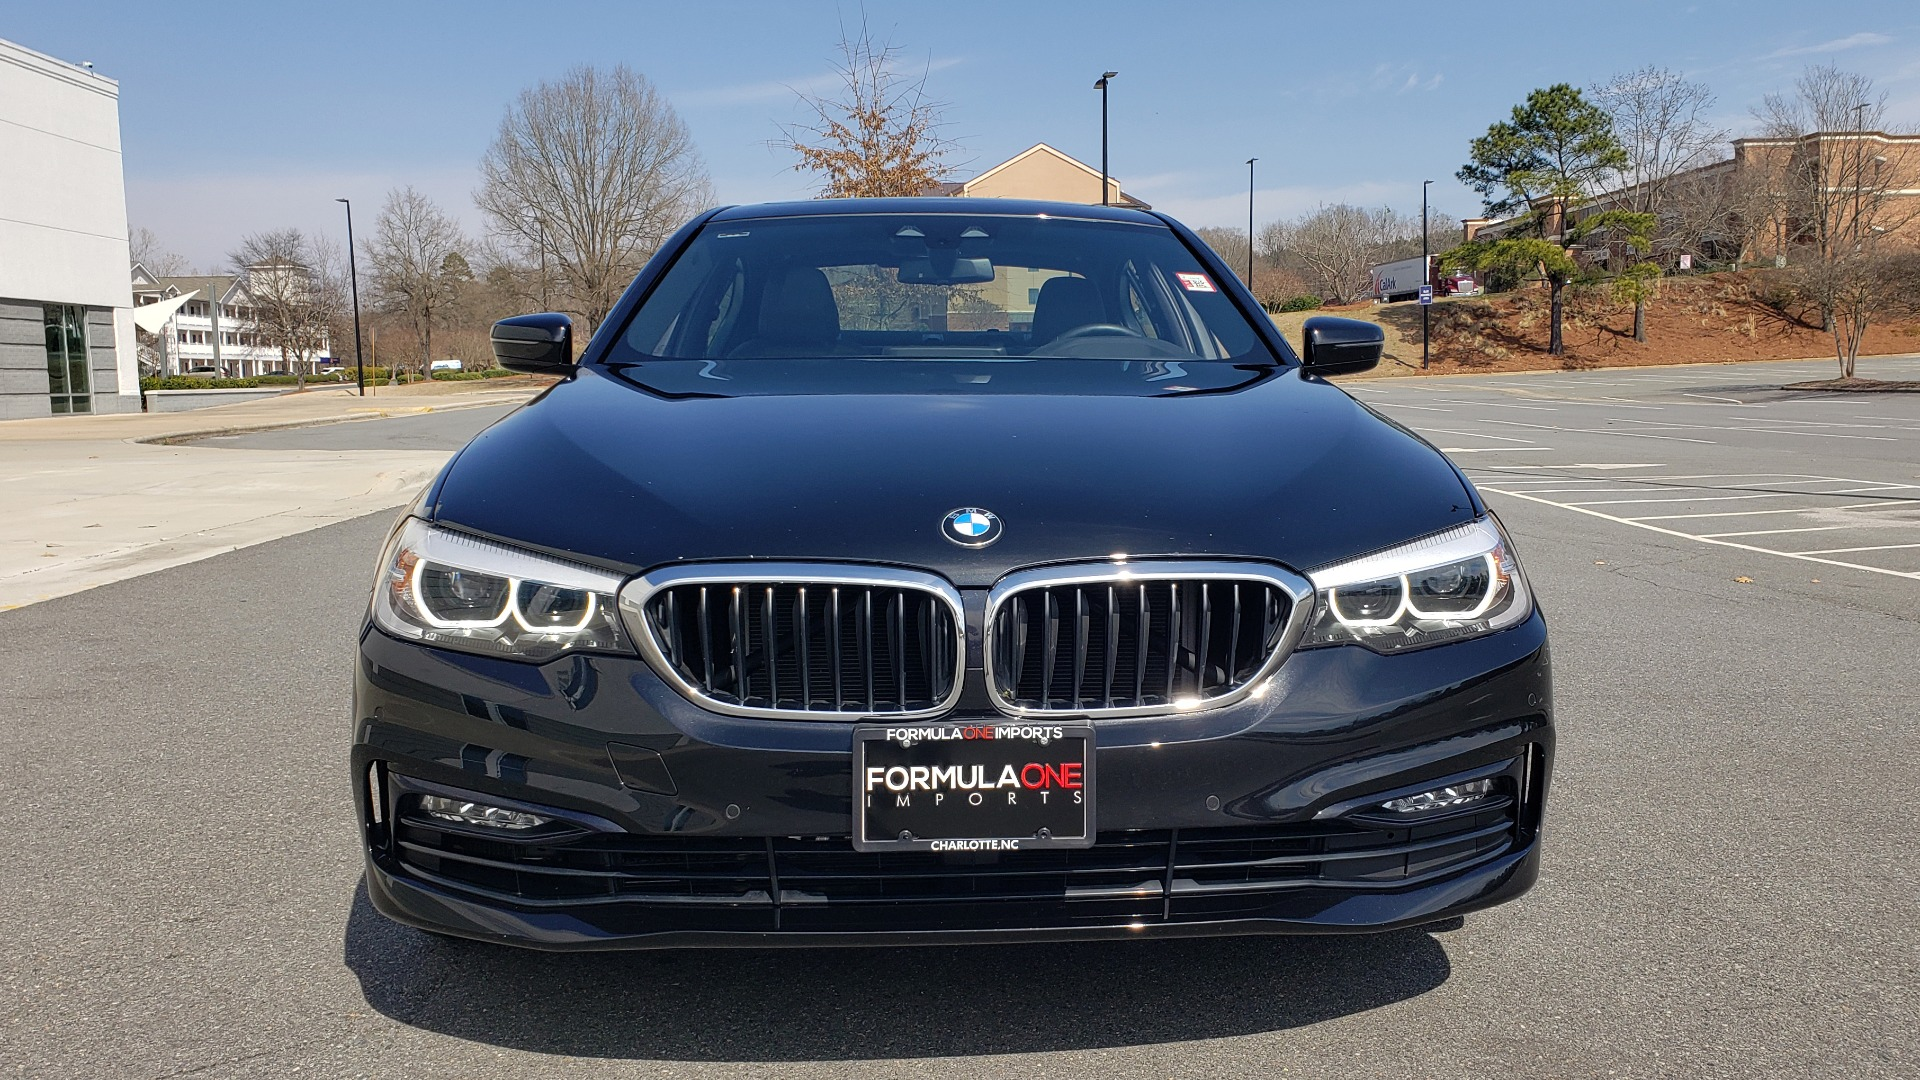 Used 2018 BMW 5 SERIES 530I XDRIVE PREMIUM / NAV / SUNROOF / DRVR ASST / REARVIEW for sale Sold at Formula Imports in Charlotte NC 28227 18